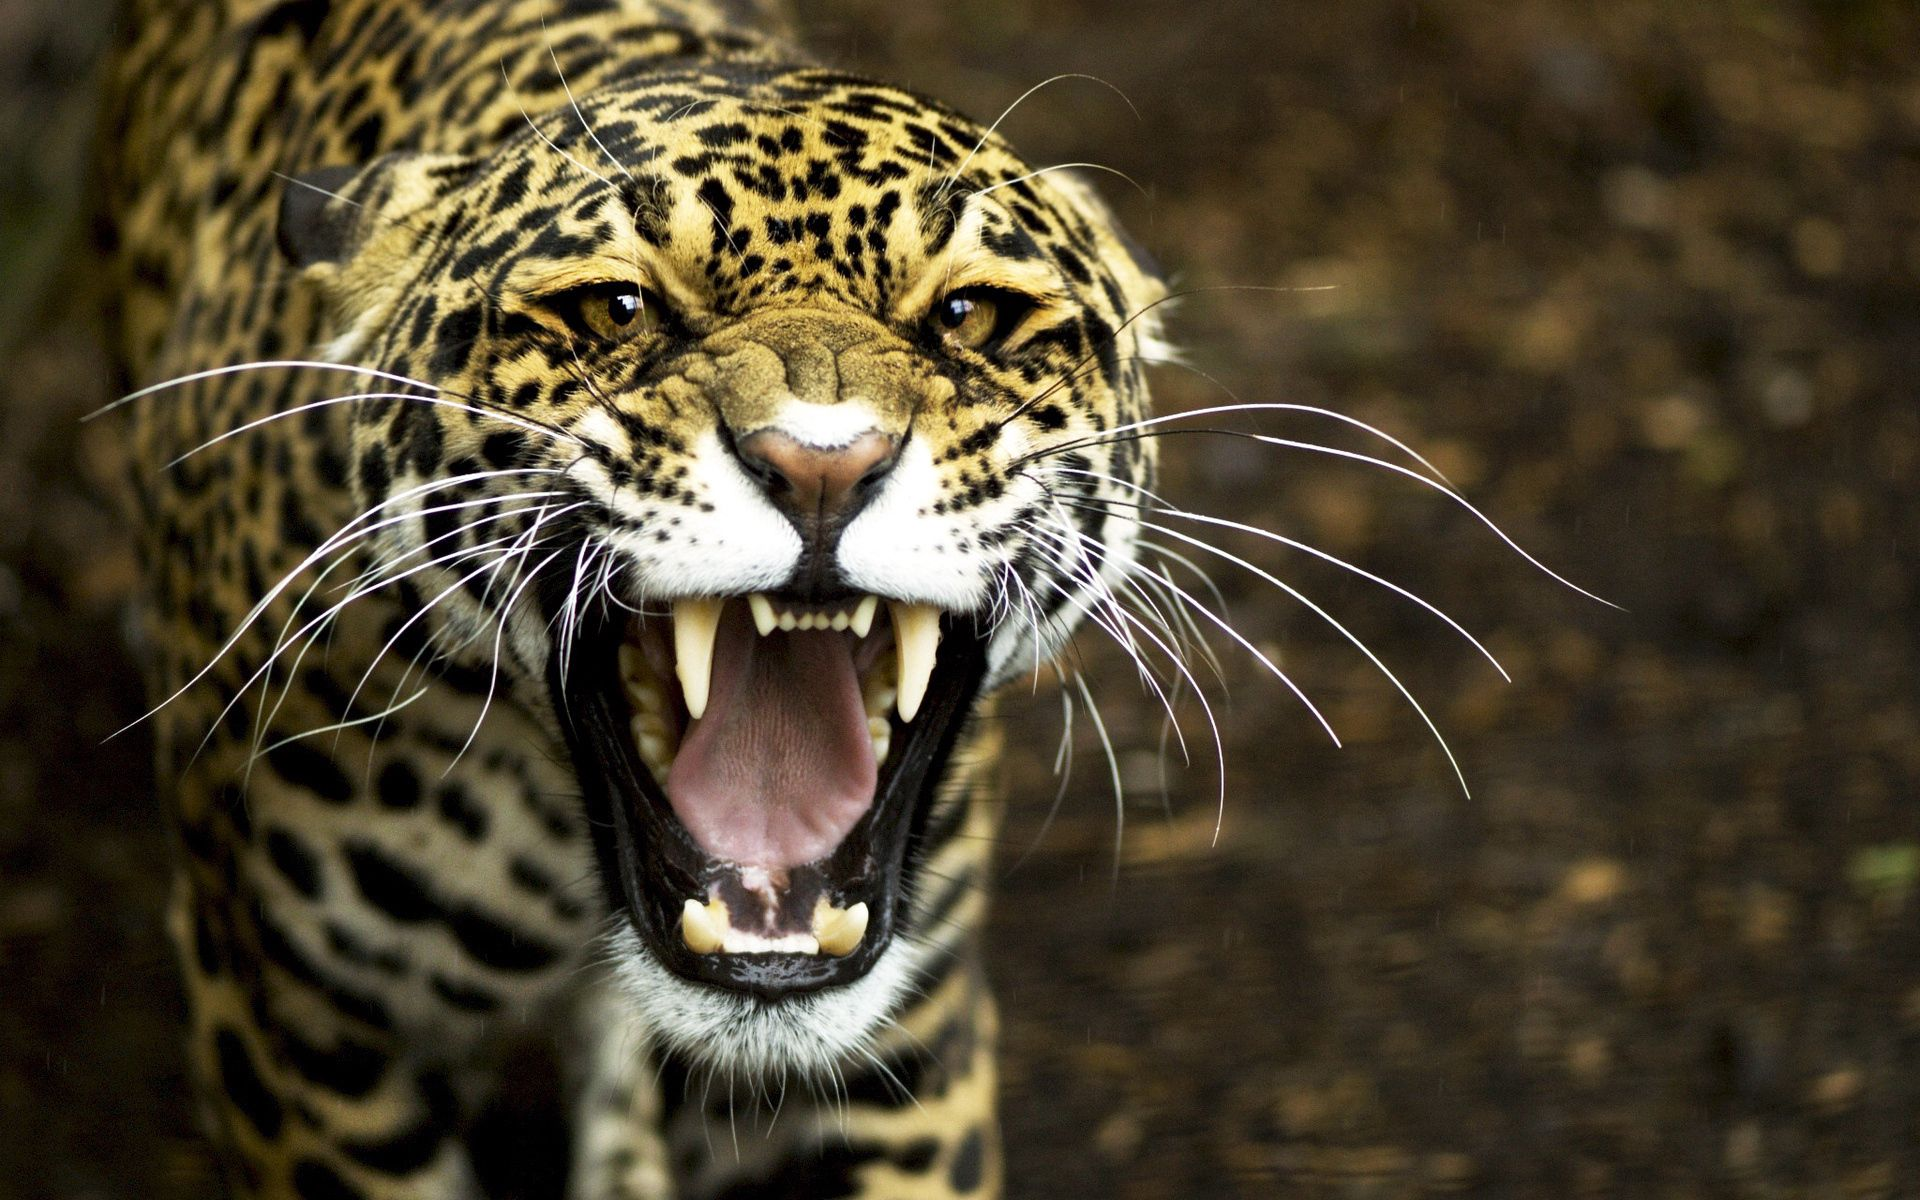 57625 download wallpaper Animals, Jaguar, Aggression, Grin, Muzzle screensavers and pictures for free